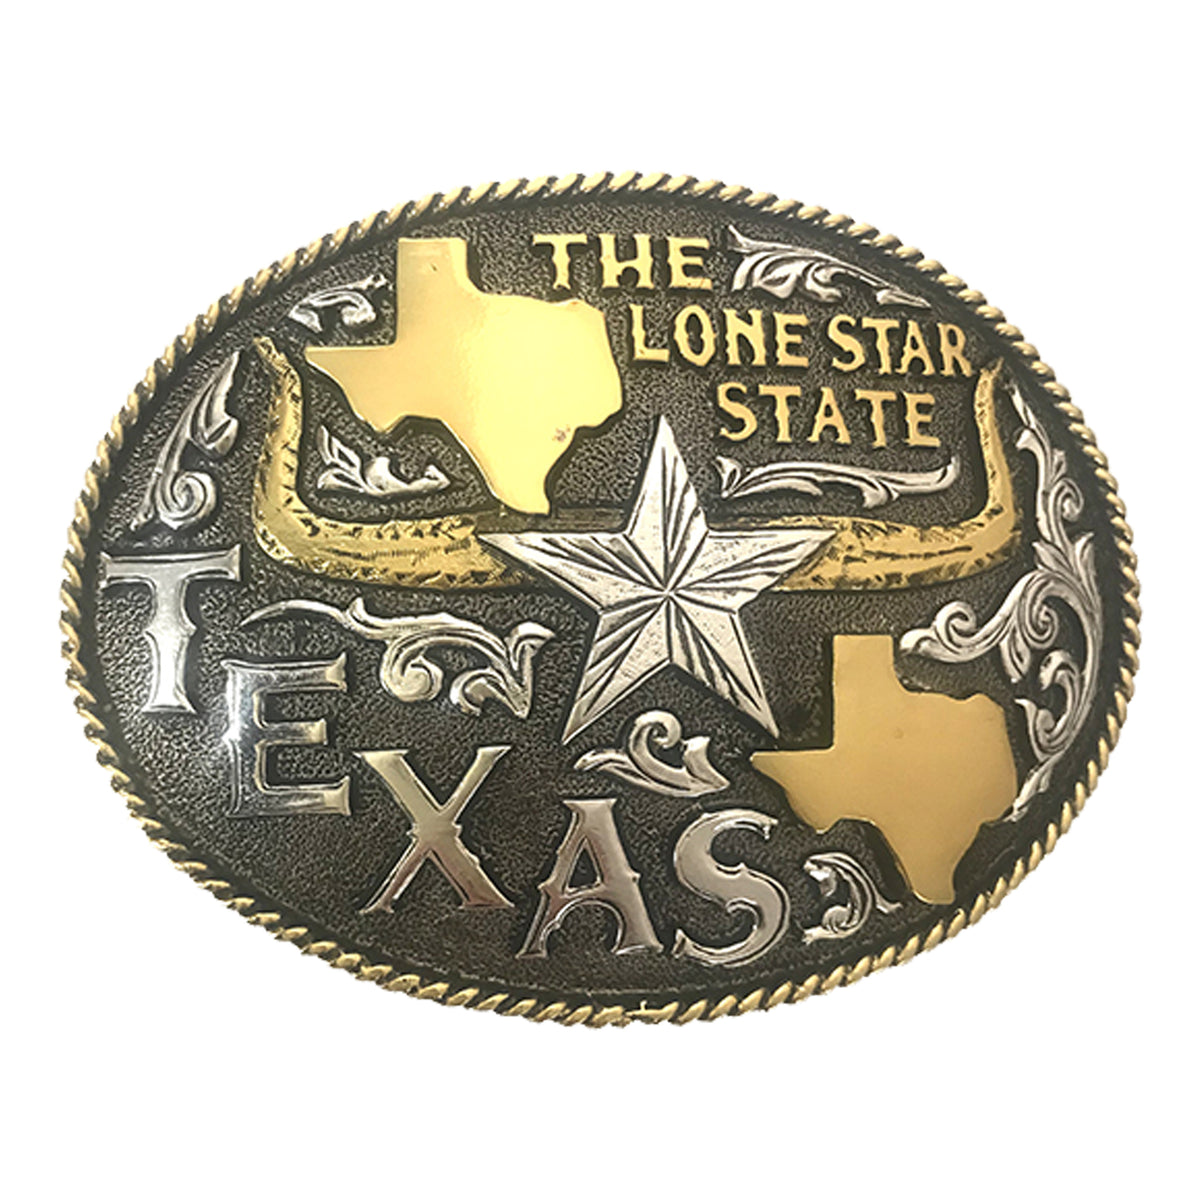 The Lone Star State Buckle